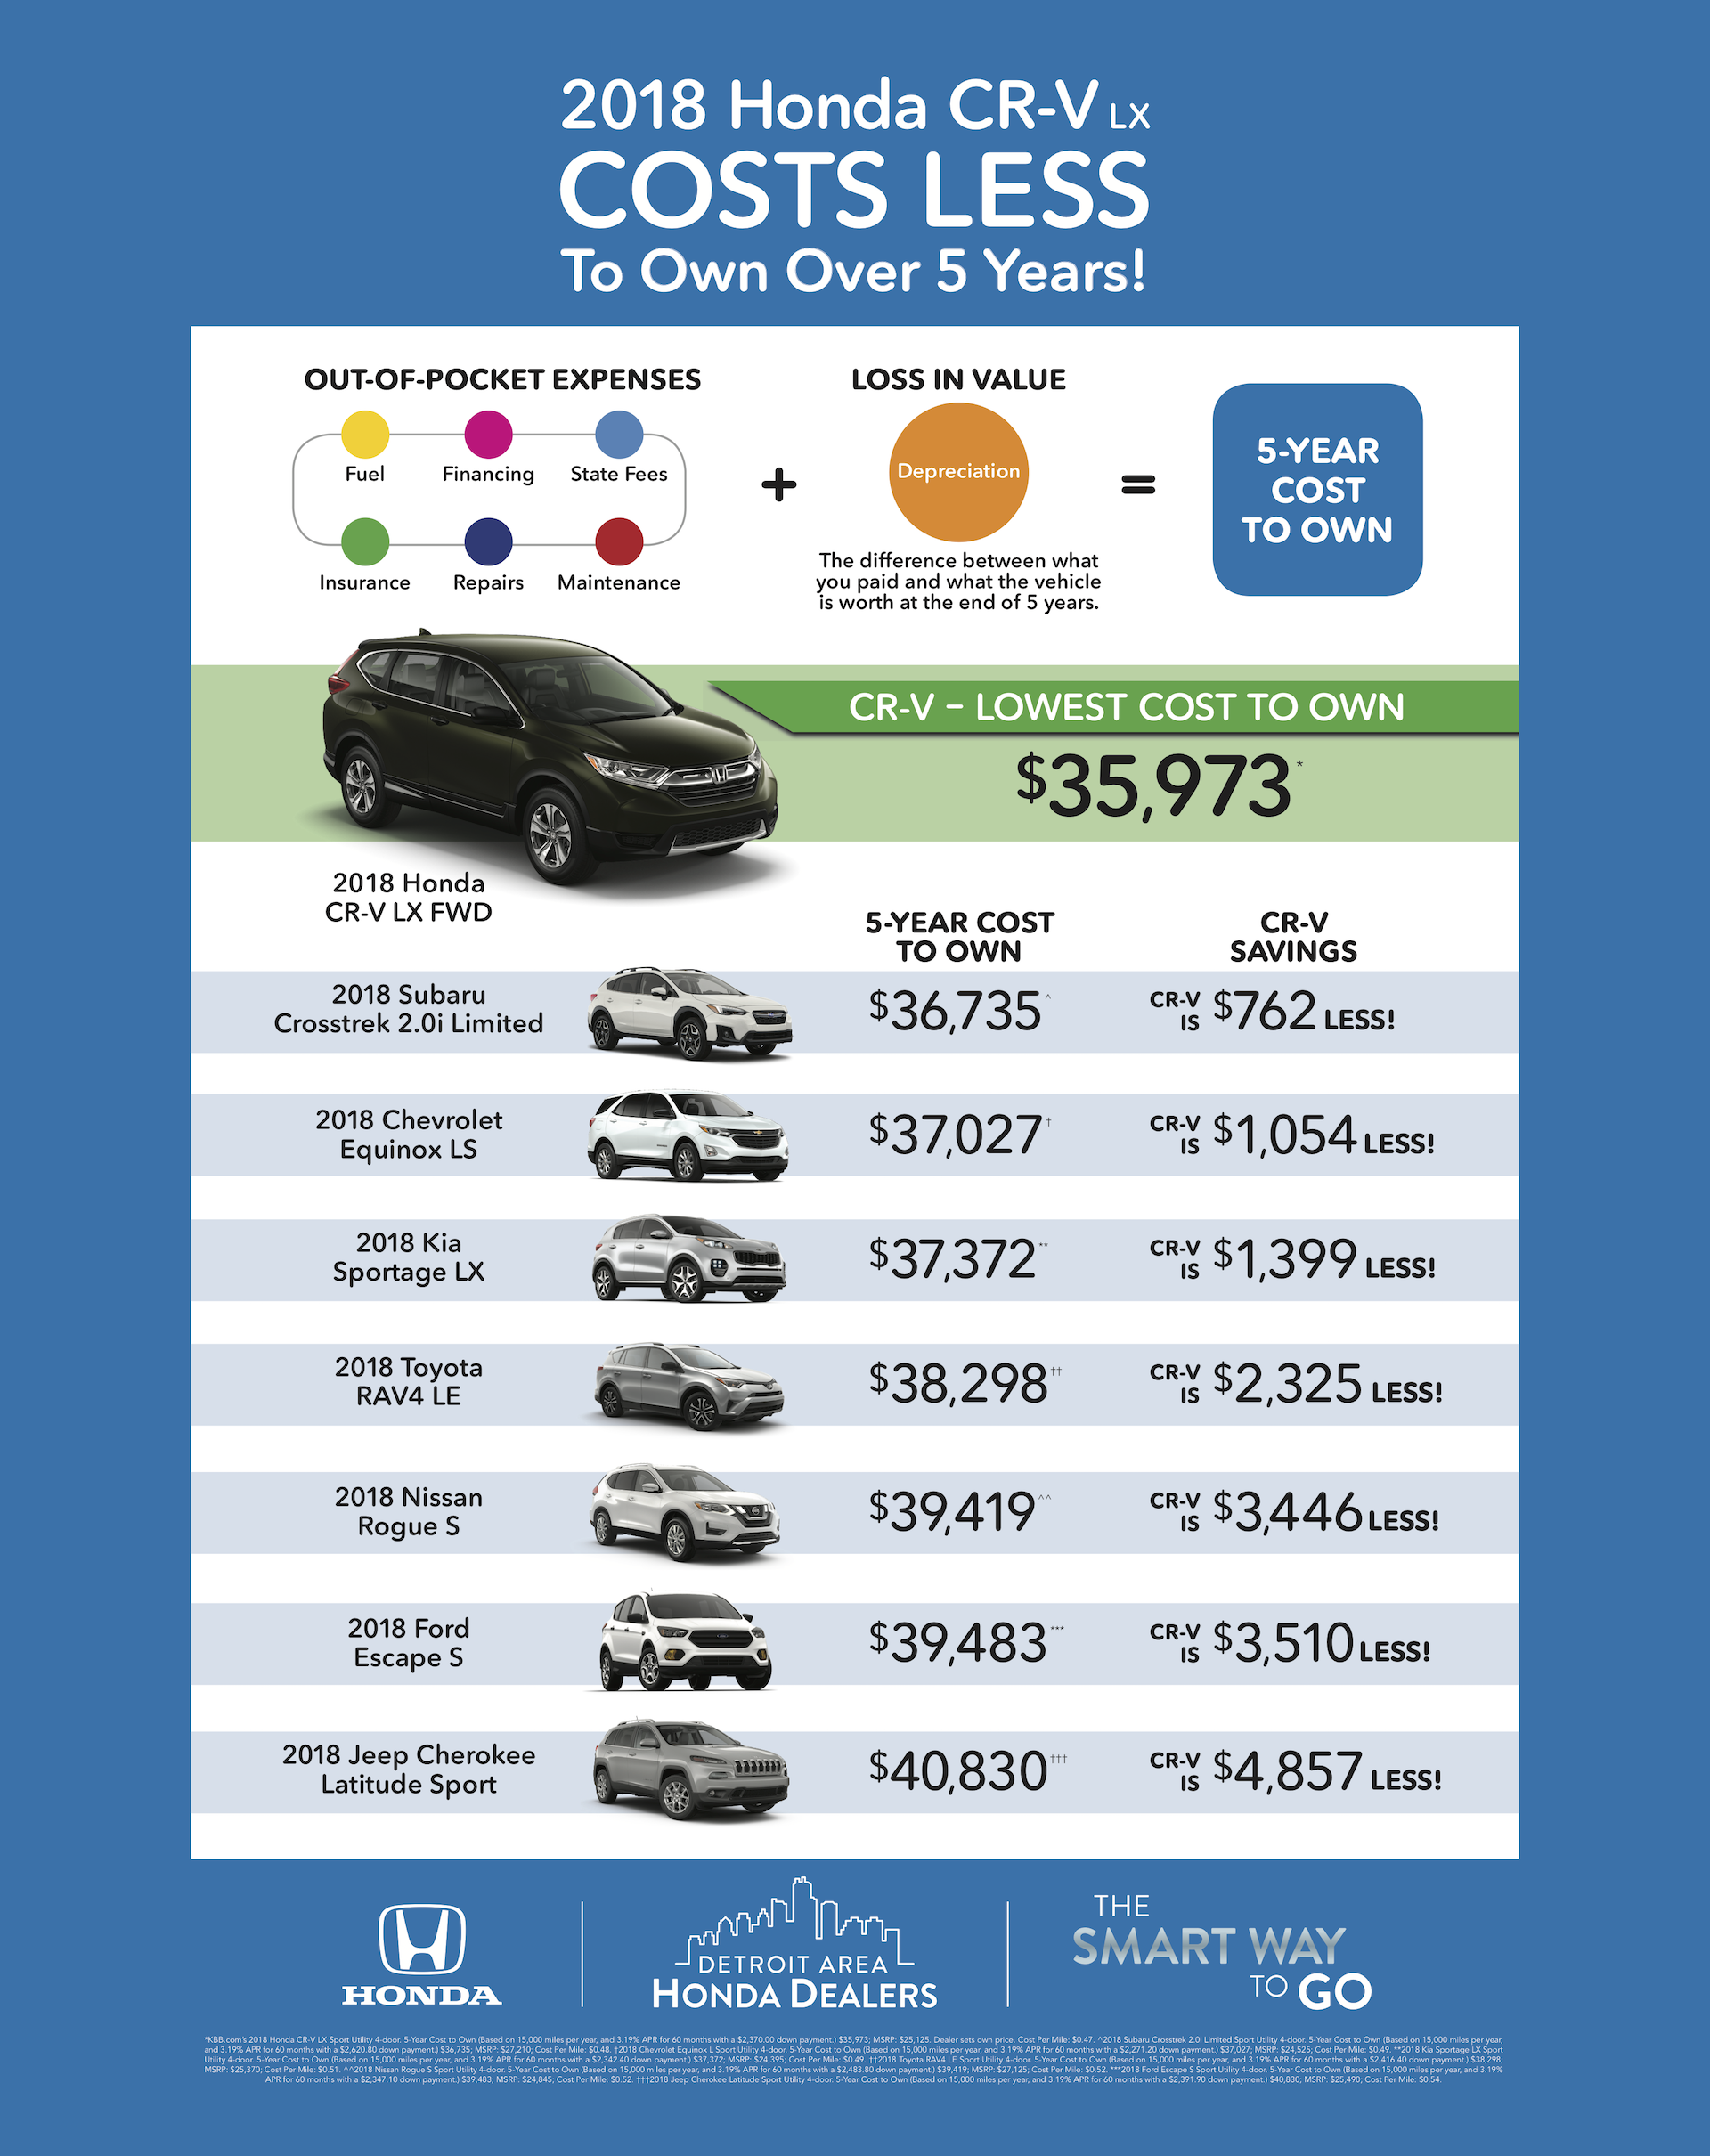 Tamaroff Honda CR-V Cost to Own